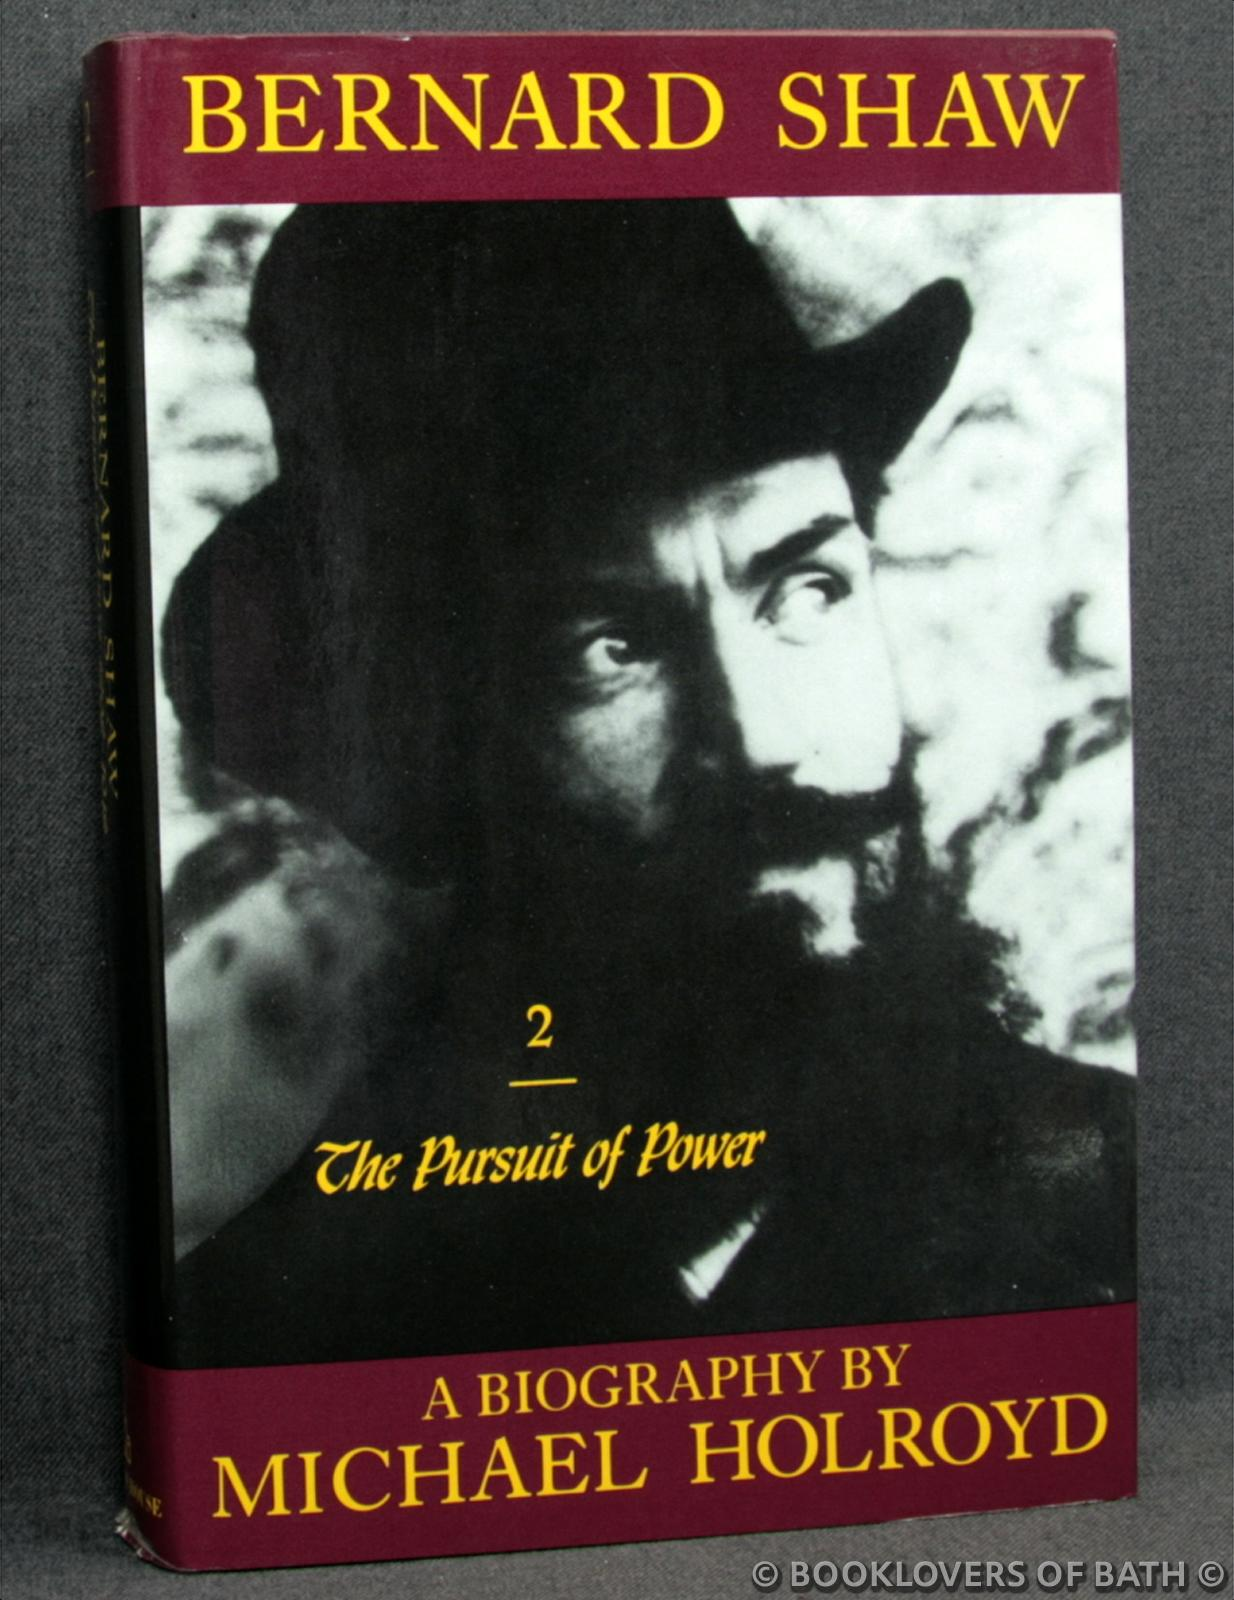 Bernard Shaw Volume 2: 1898-1918 The Pursuit of Power - Michael Holroyd